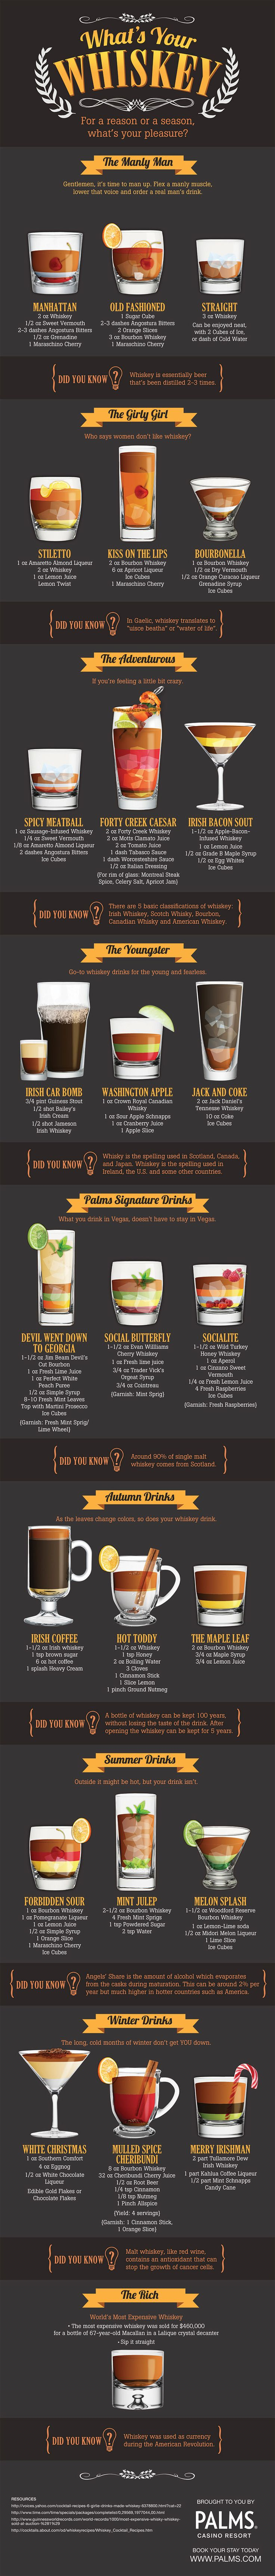 What's Your Whiskey [Infographic] | The Roosevelts